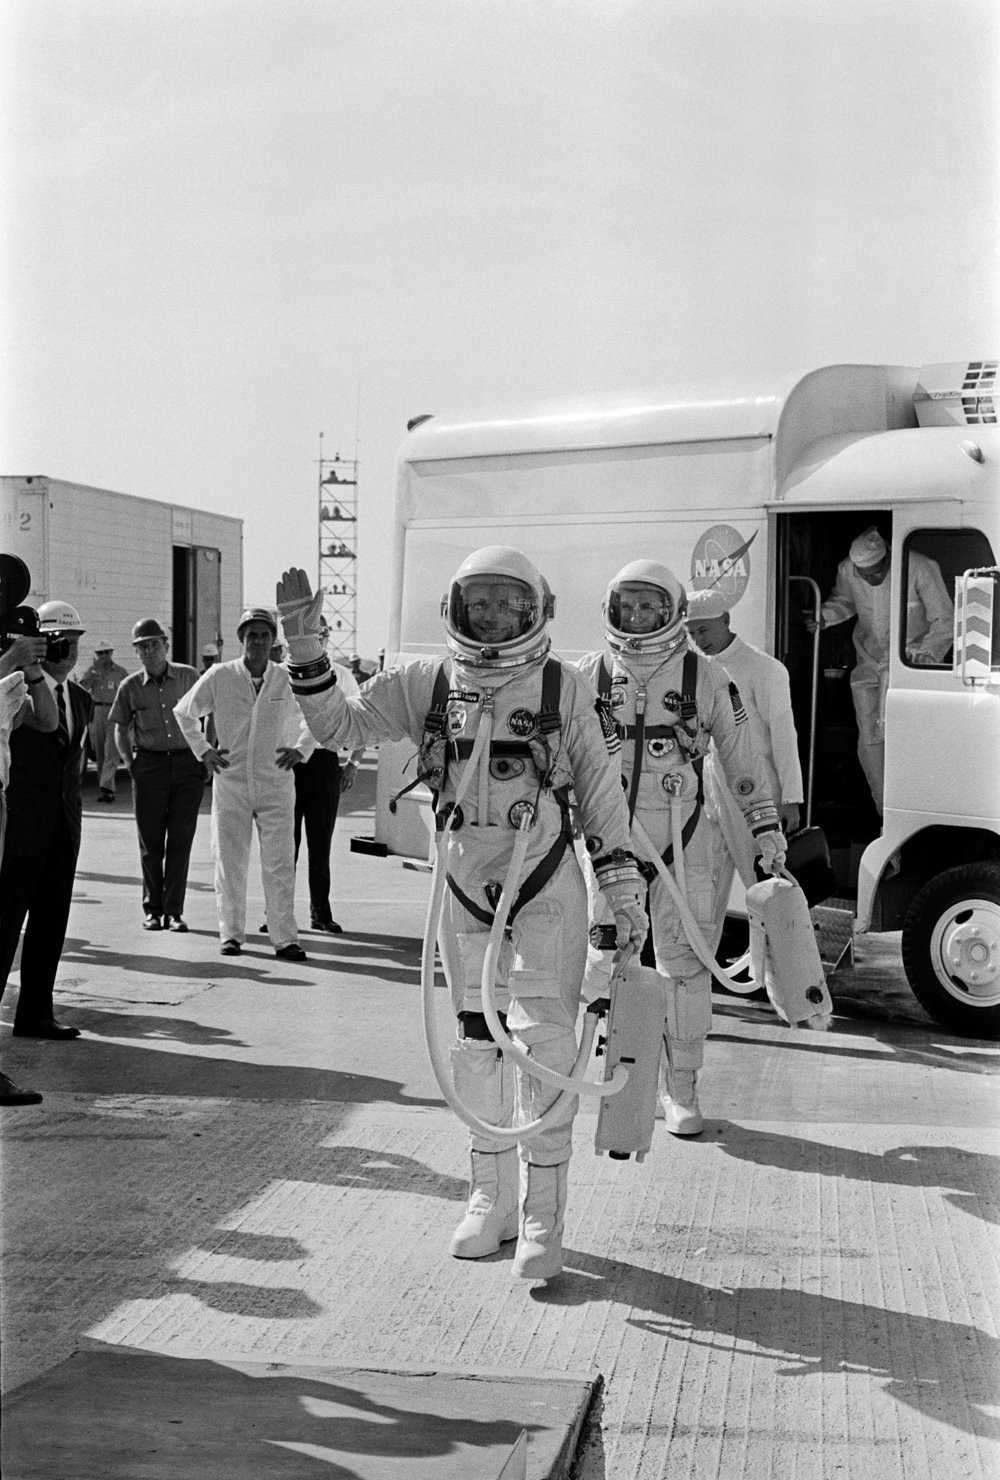 Astronauts Neil A. Armstrong and David R. Scott walk up the ramp at Pad 19 during the Gemini-8 prelaunch countdown. CAPE KENNEDY, FL 1966